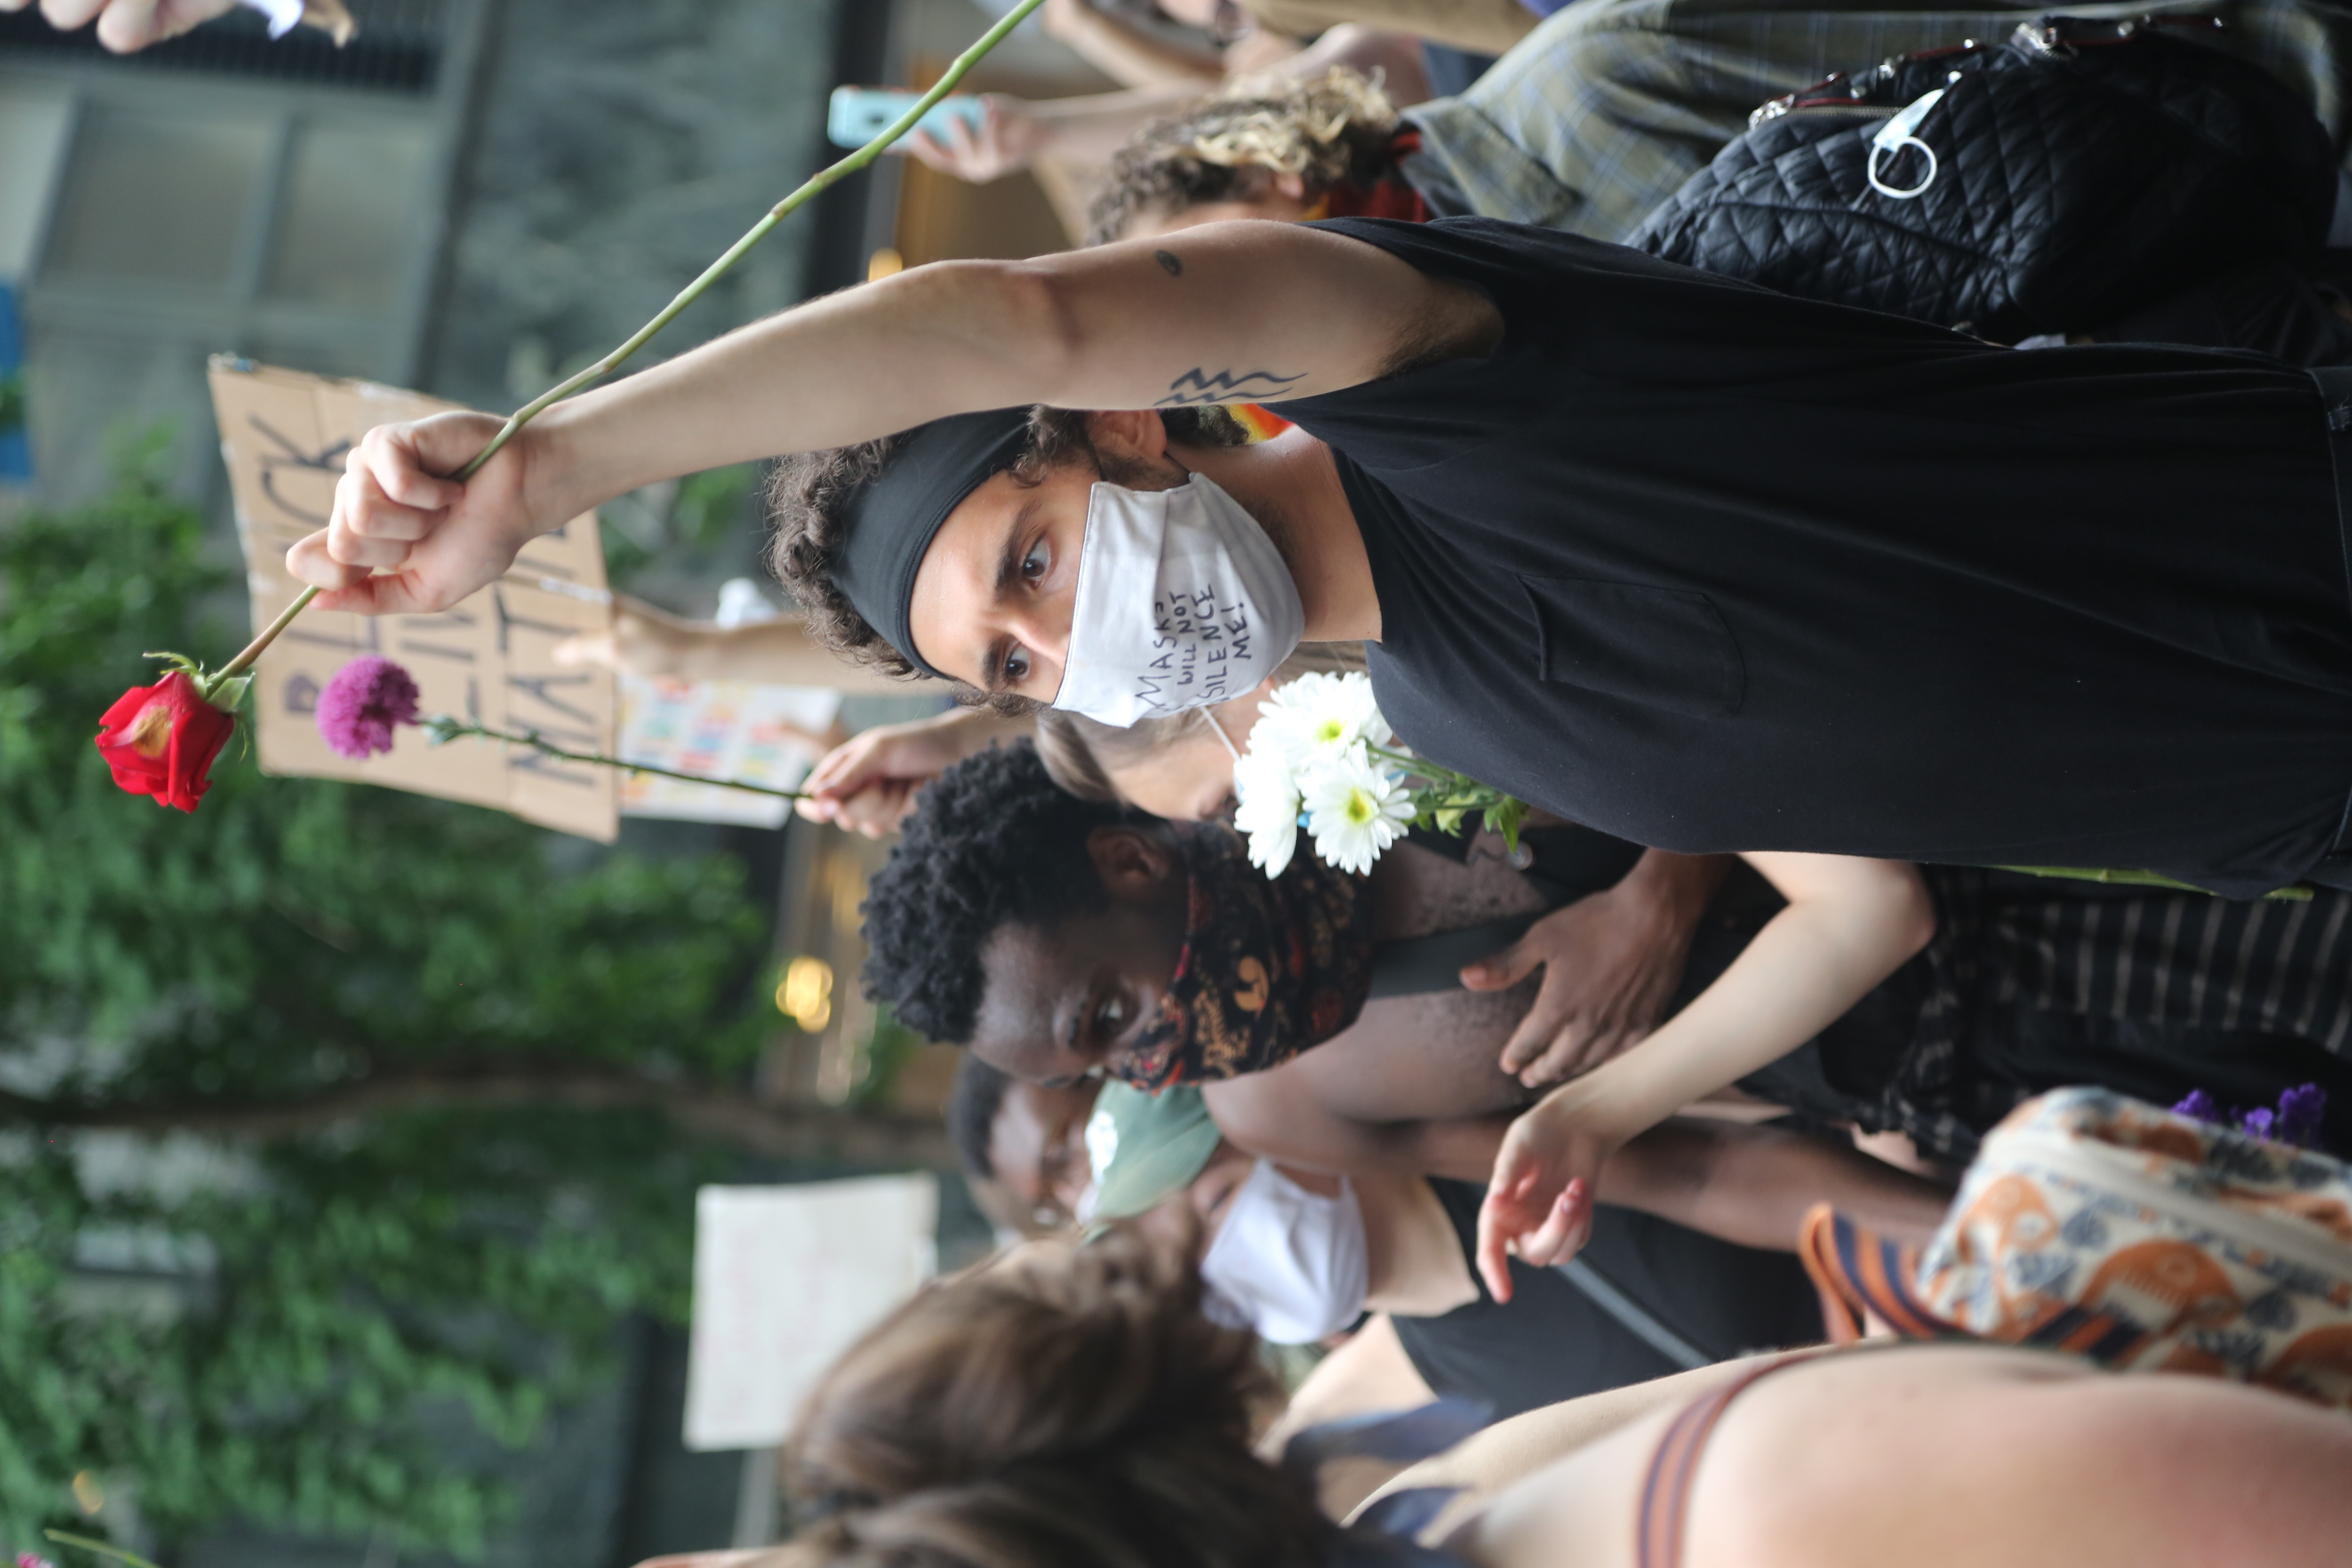 Protests in New York and all over the country were very diverse in make up.